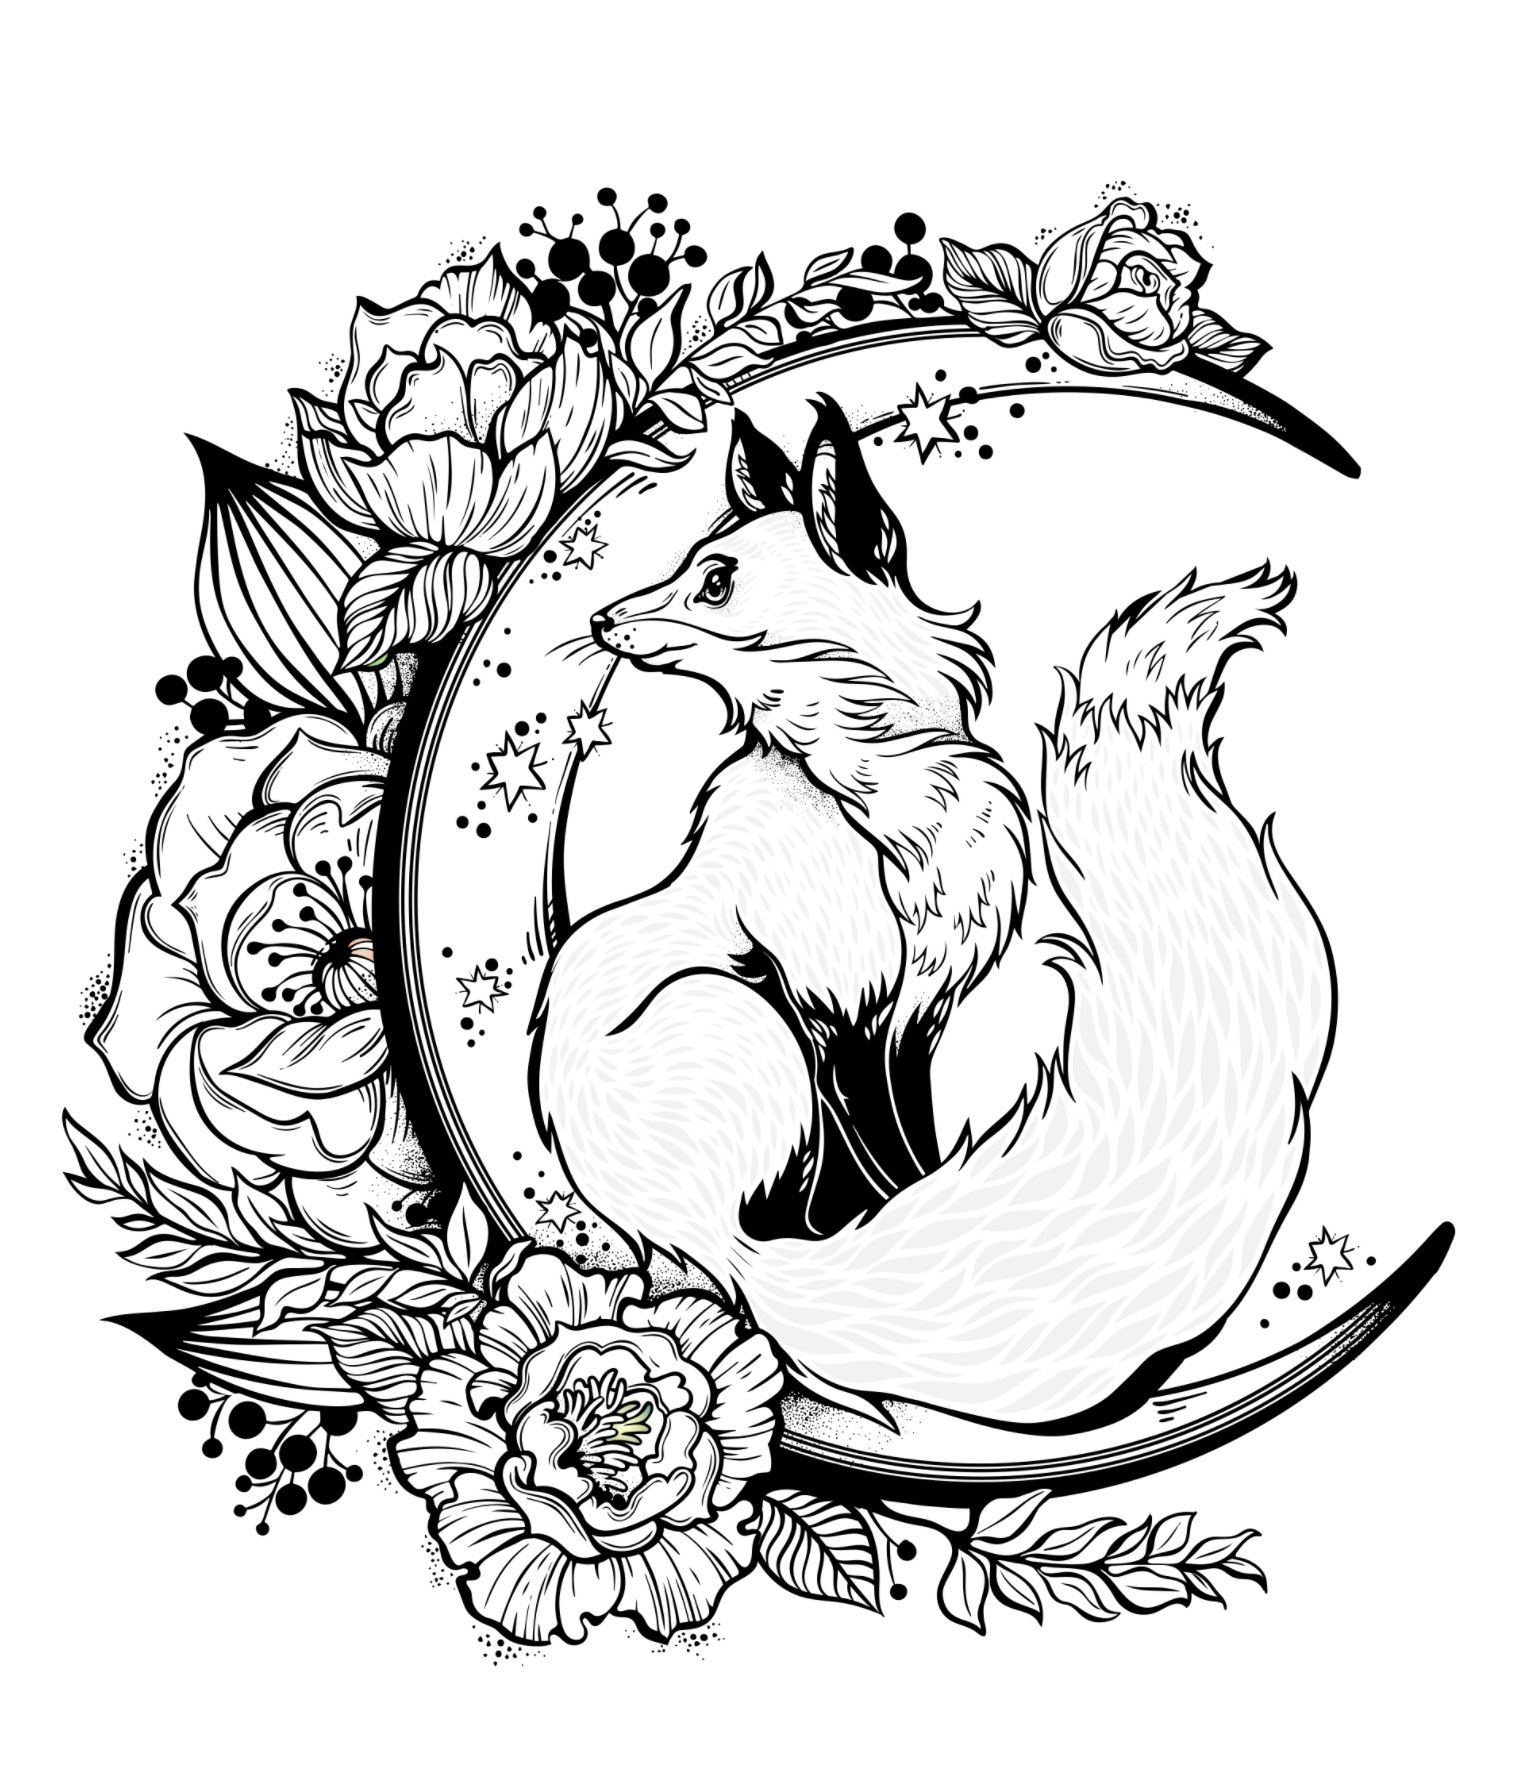 I Love This Fox Coloring Pic Just Beautiful Fox Coloring Page Puppy Coloring Pages Coloring Pages